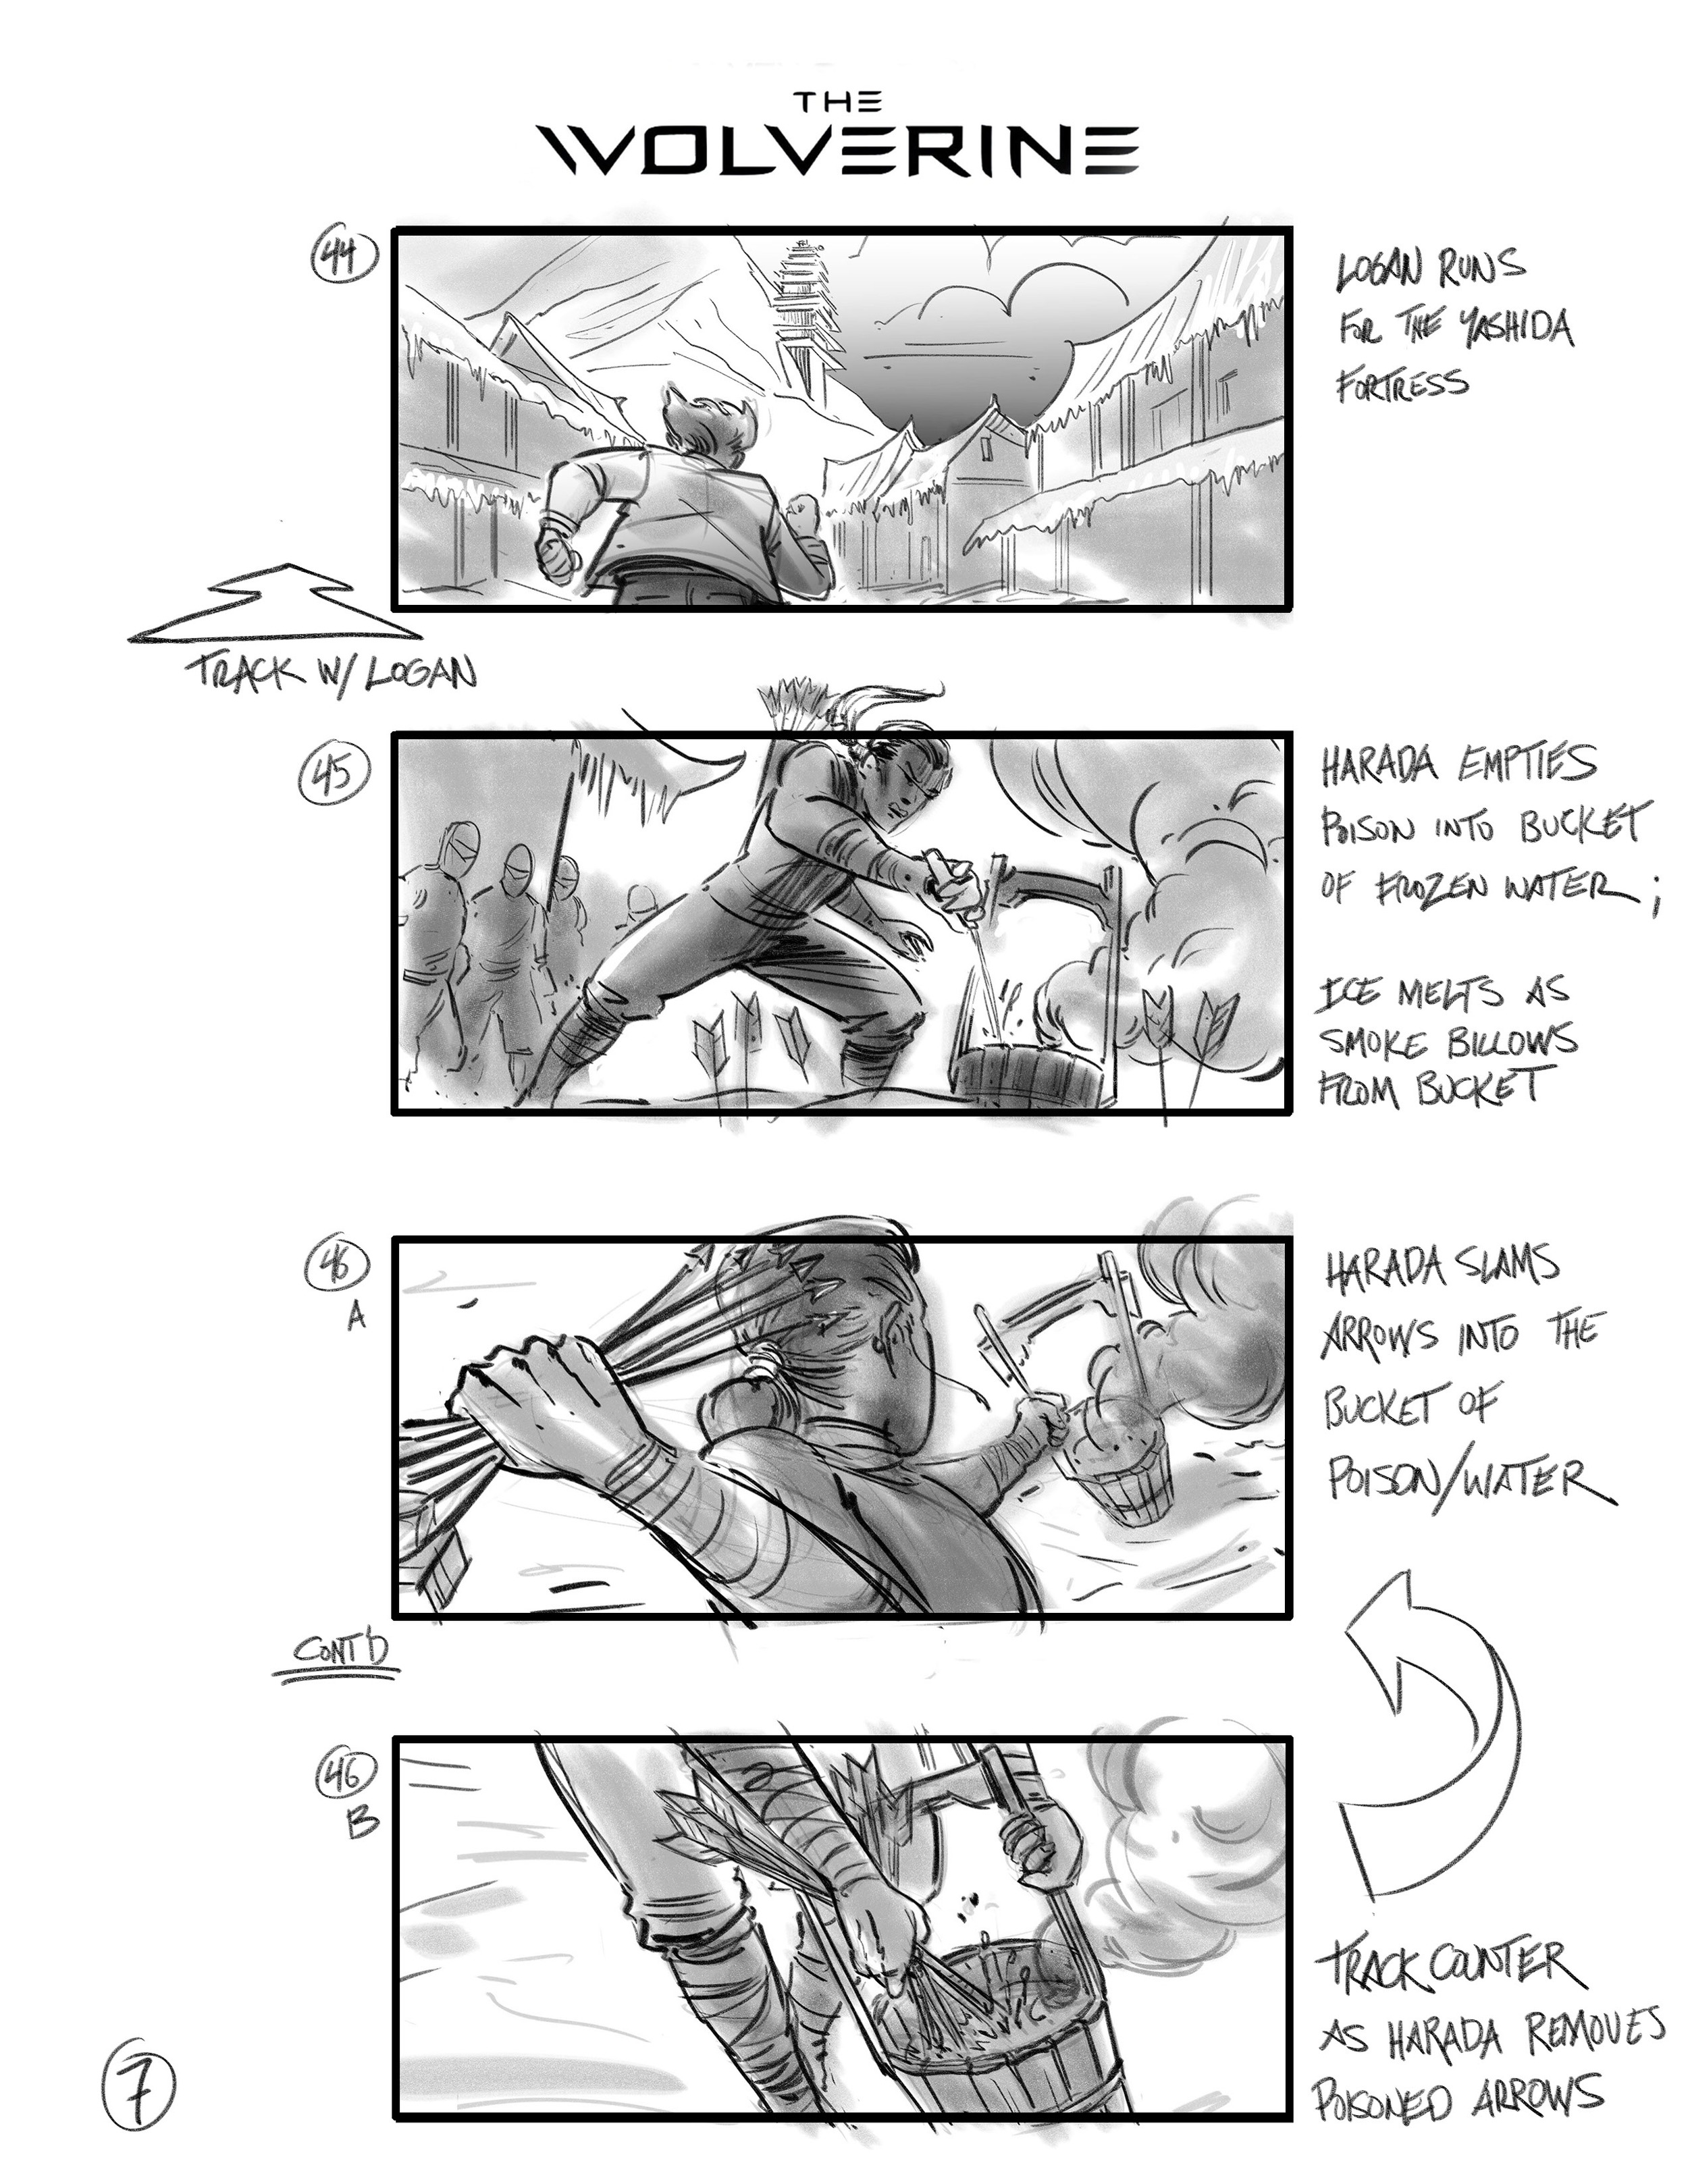 Ice Fight_Page_1.jpg